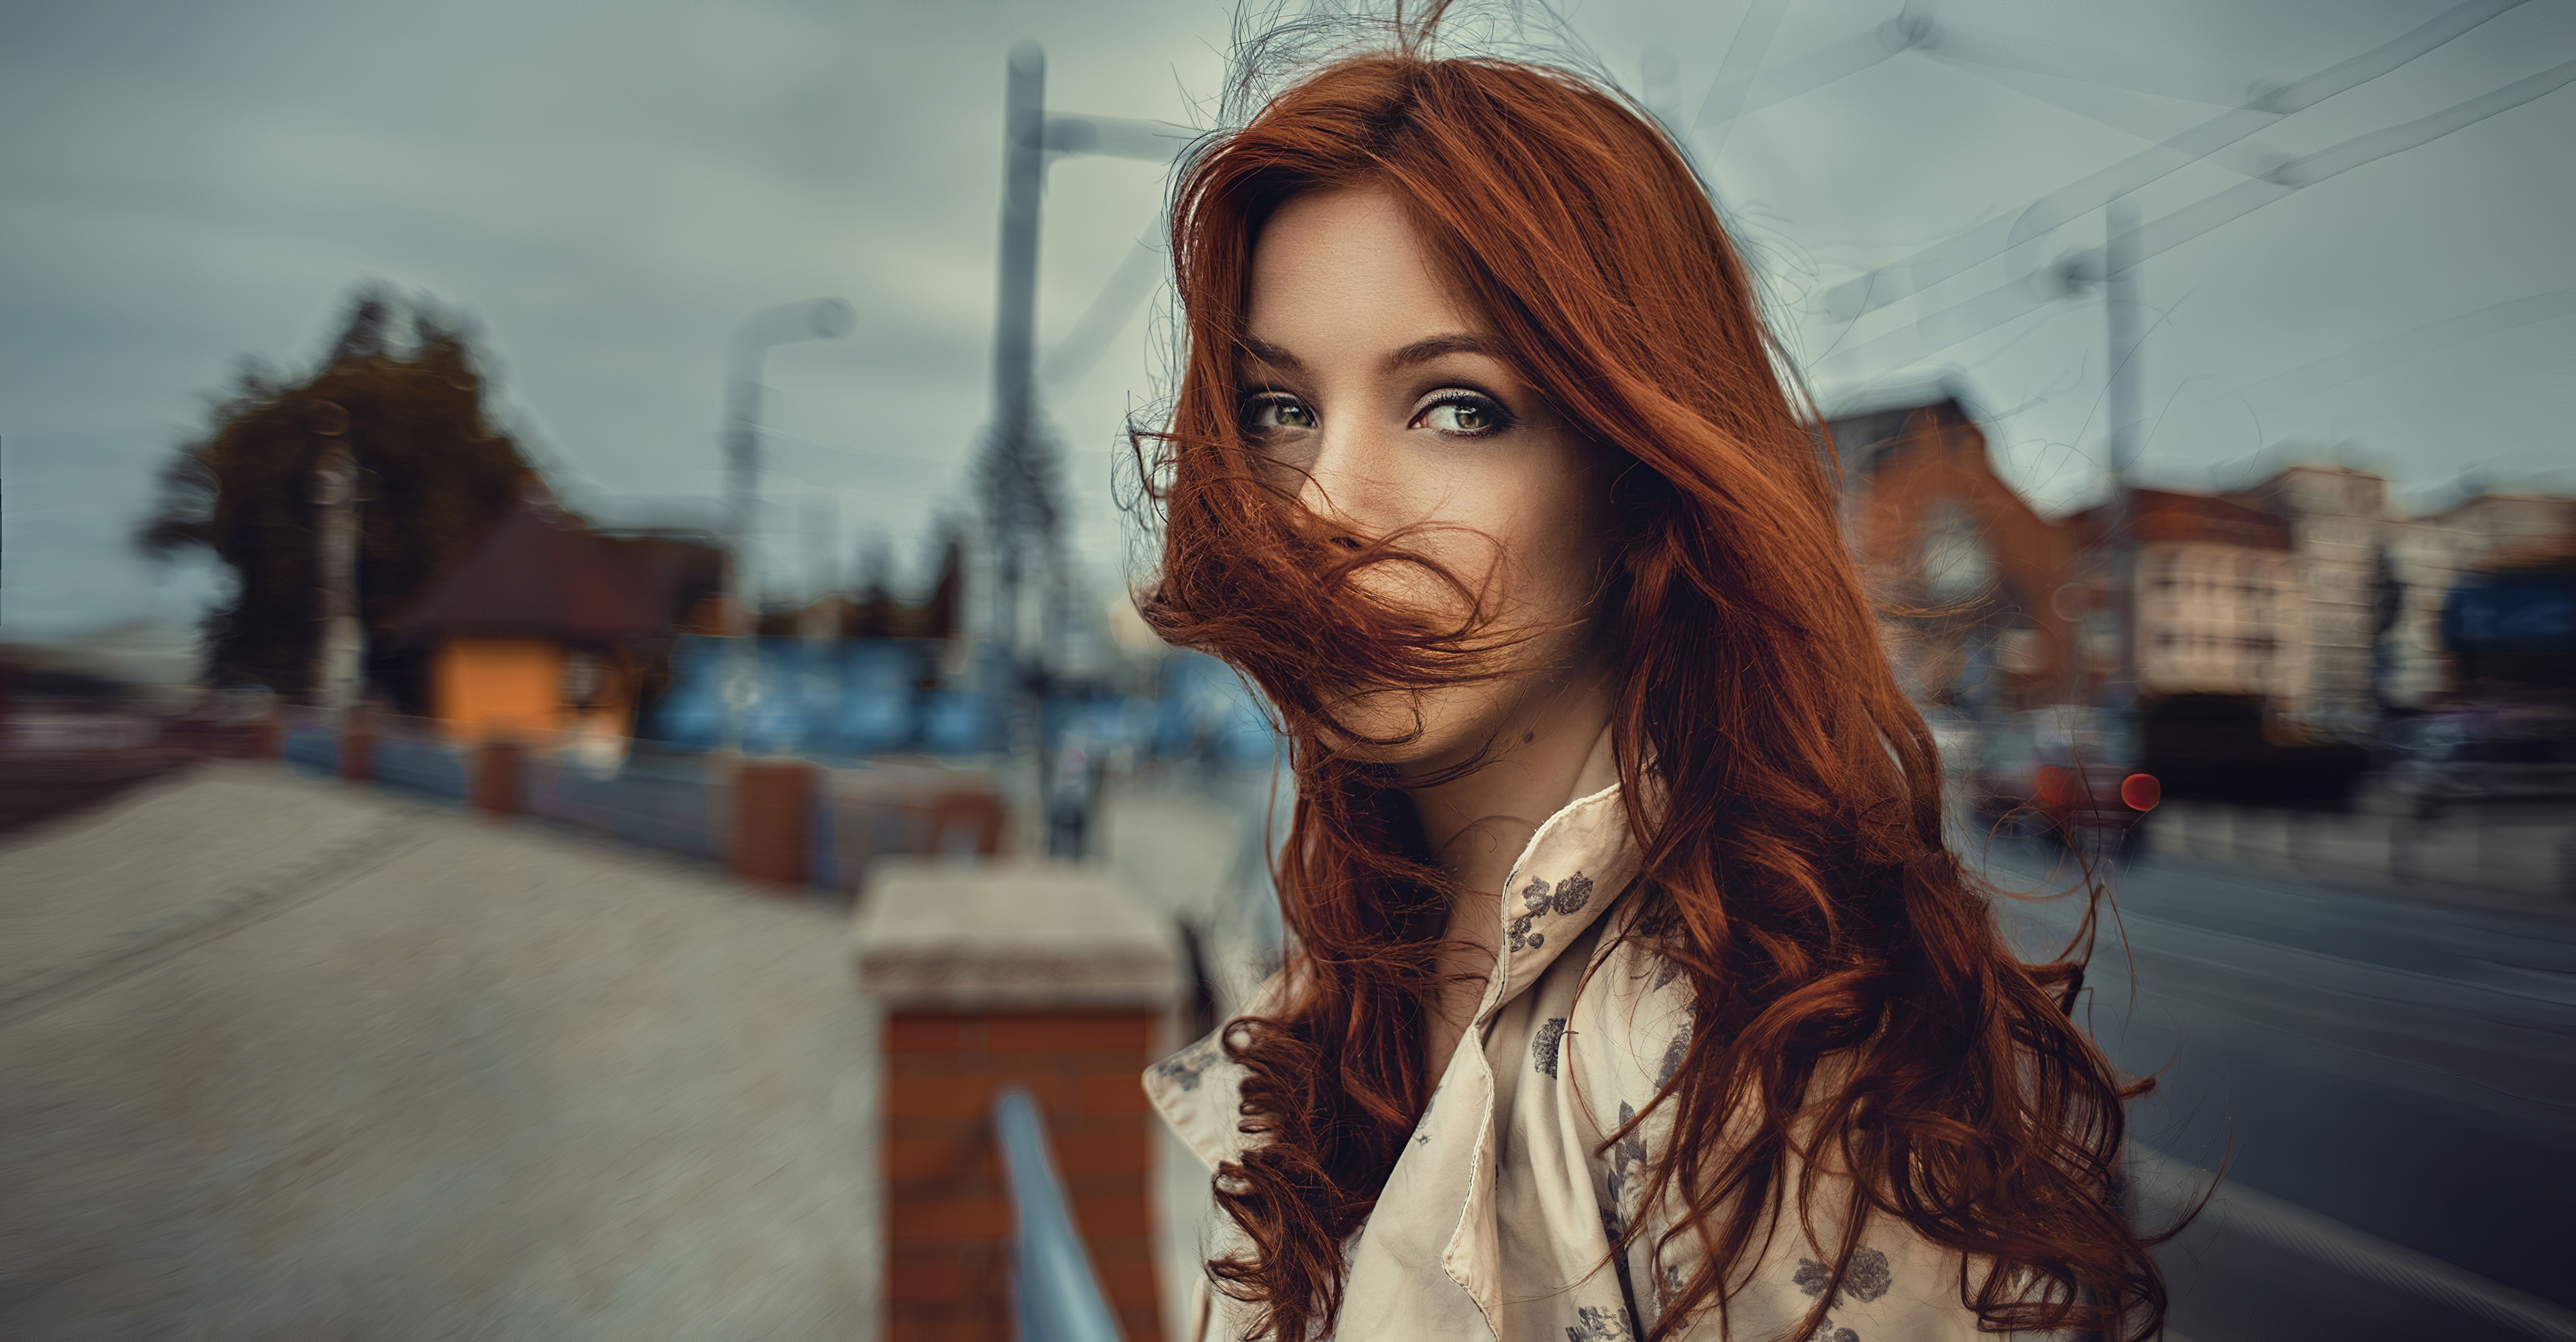 red hair in face wind blowing 1575666213 - Red Hair In Face Wind Blowing -